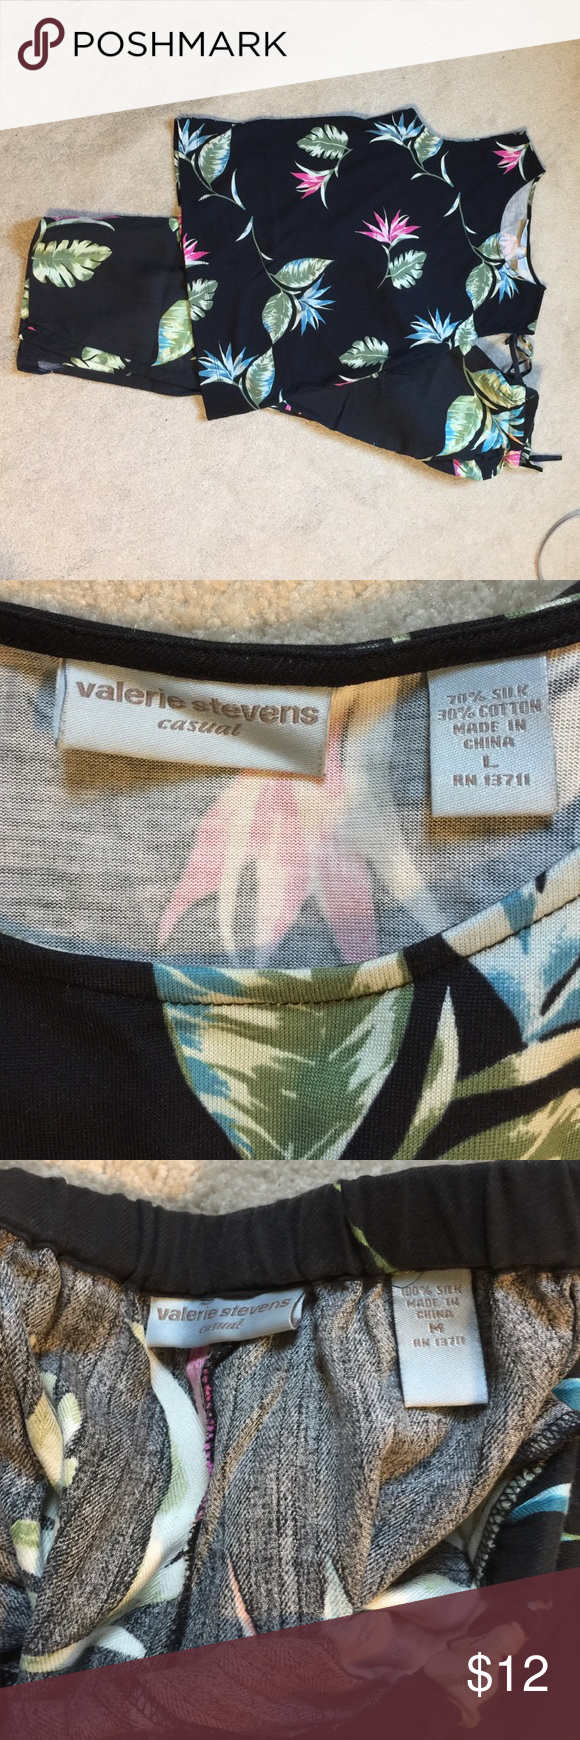 Calling all tropical 🌴 vacationers Perfect for that cruise or trip to Hawaii matching tank and Capris pants with elastic waistband. Top is L but fits more like a M. Valerie Stevens Other